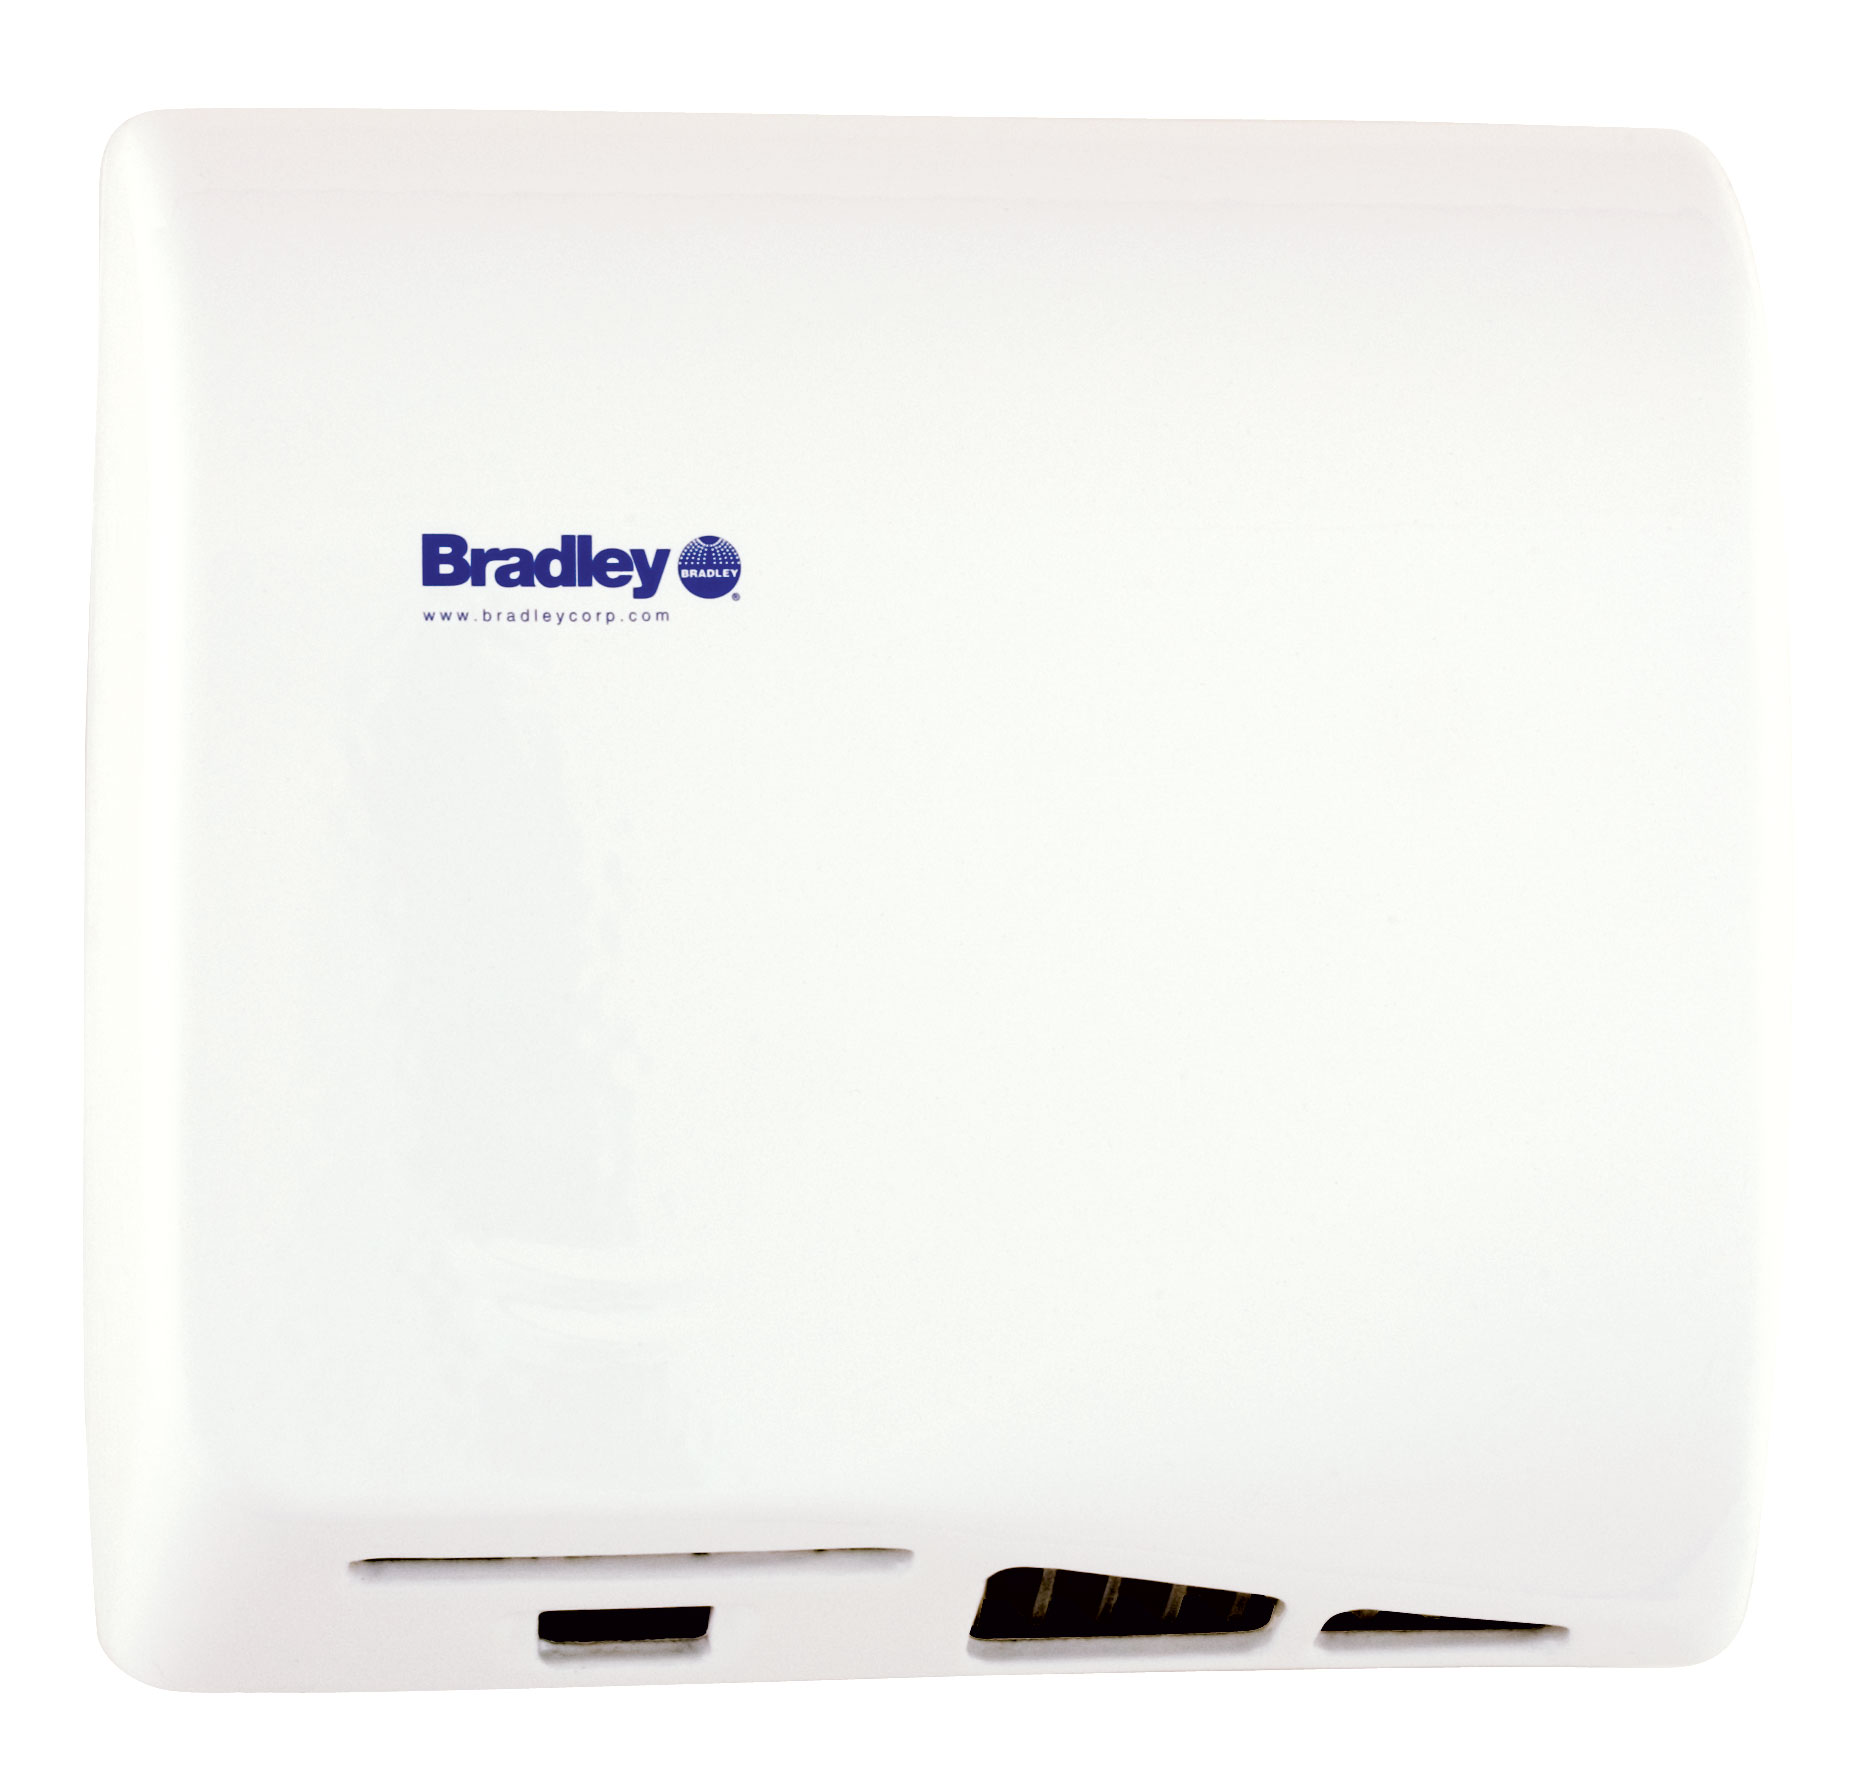 bradley aerix variable speed warm air hand dryer 2902 280000 white br - Air Hand Dryers